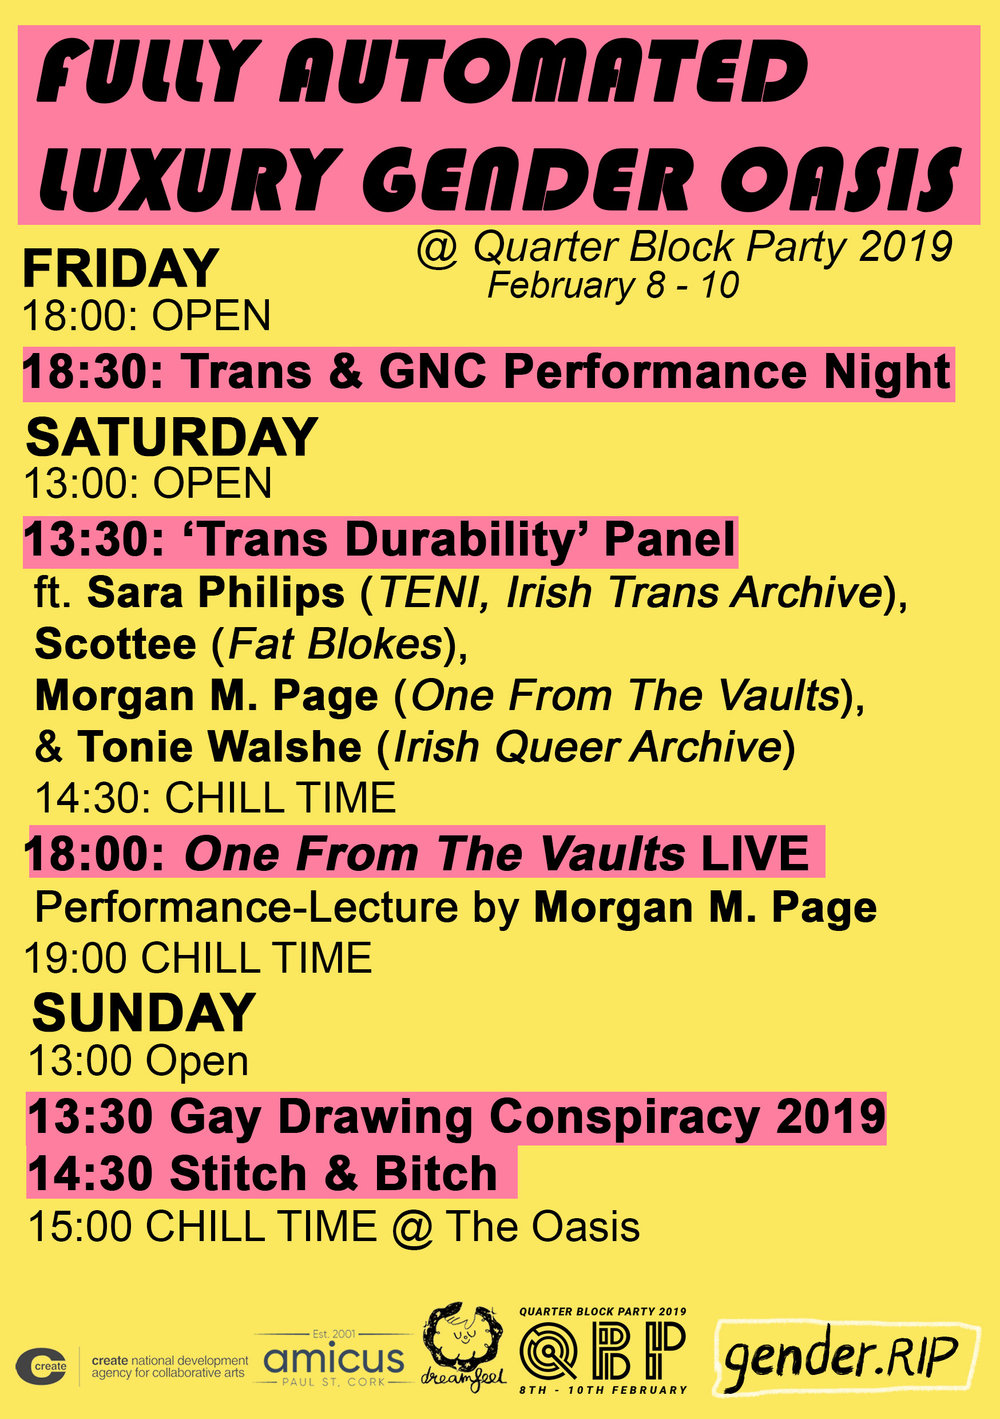 gender.RIP presents: Fully Automated Luxury Gender Oasis @ Quarter Block Party